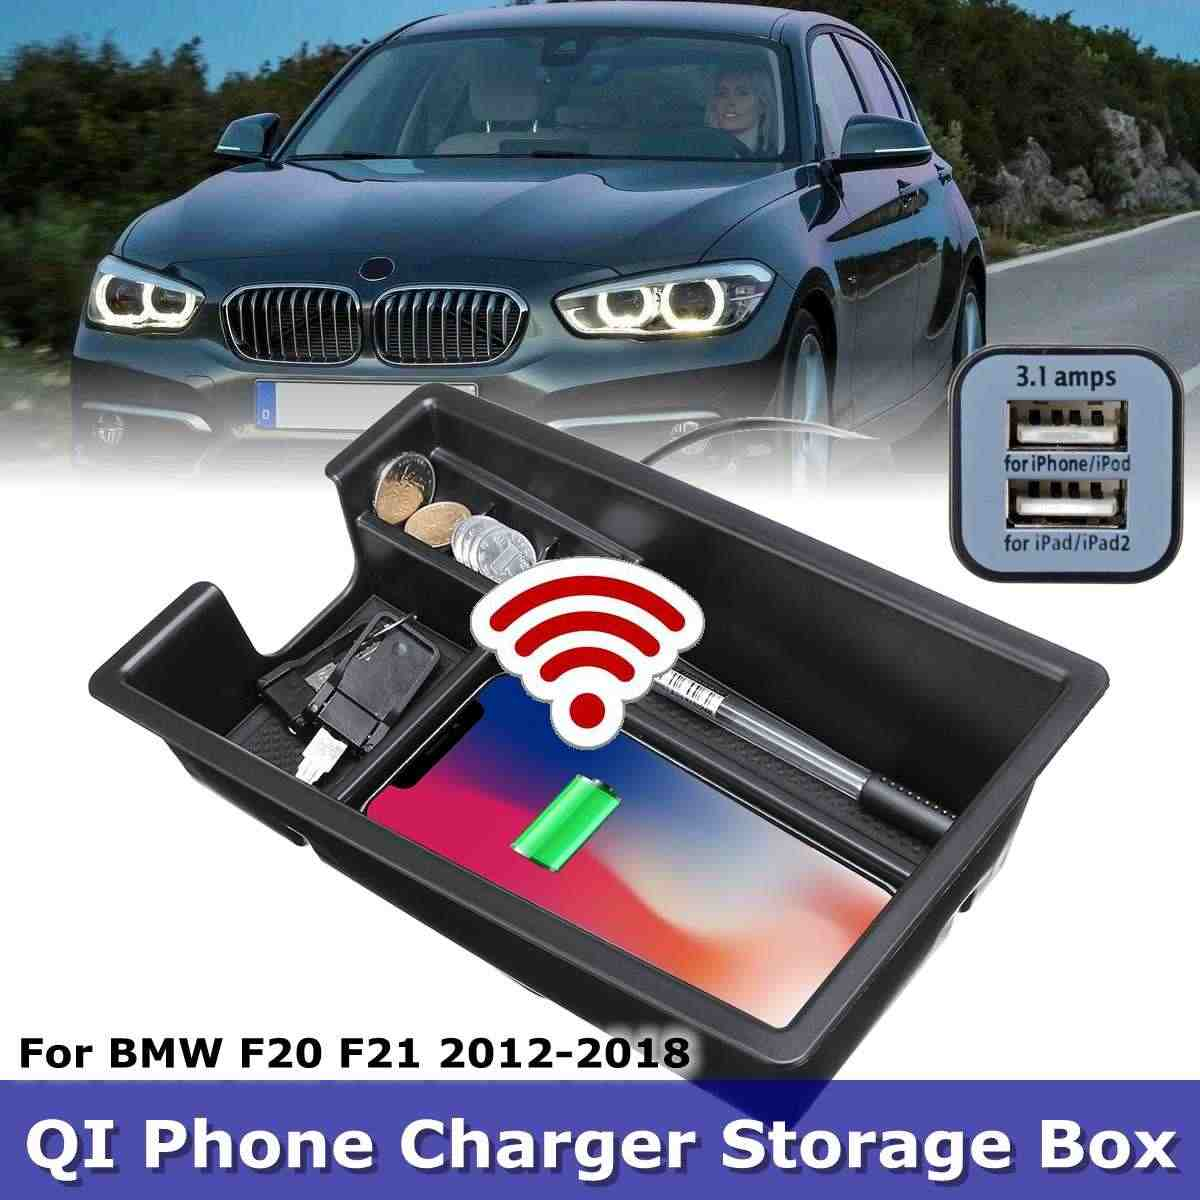 phone wireless charging Central Armrest storage box For BMW  X3 X4 X5 X6 G30 G38 F10 F15 F16 F20 F21 F25 F30 F32 F34 F48 LHD